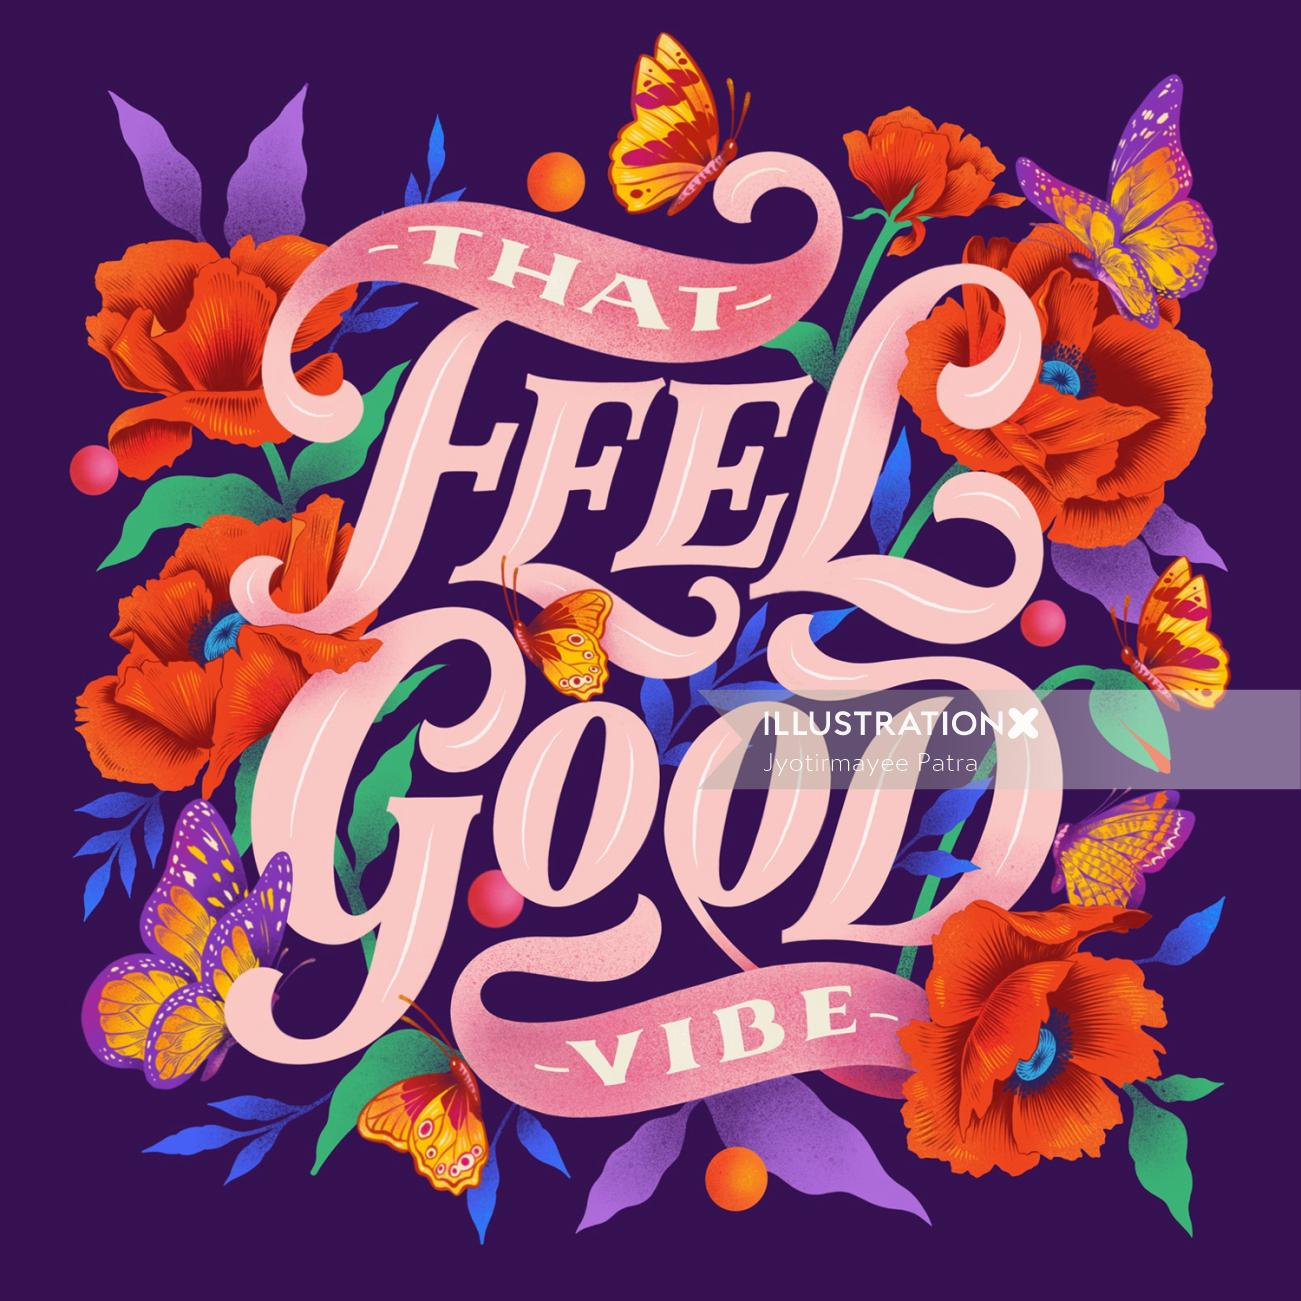 Whimsical illustration for the Valentine's Day for all about that feel good vibe